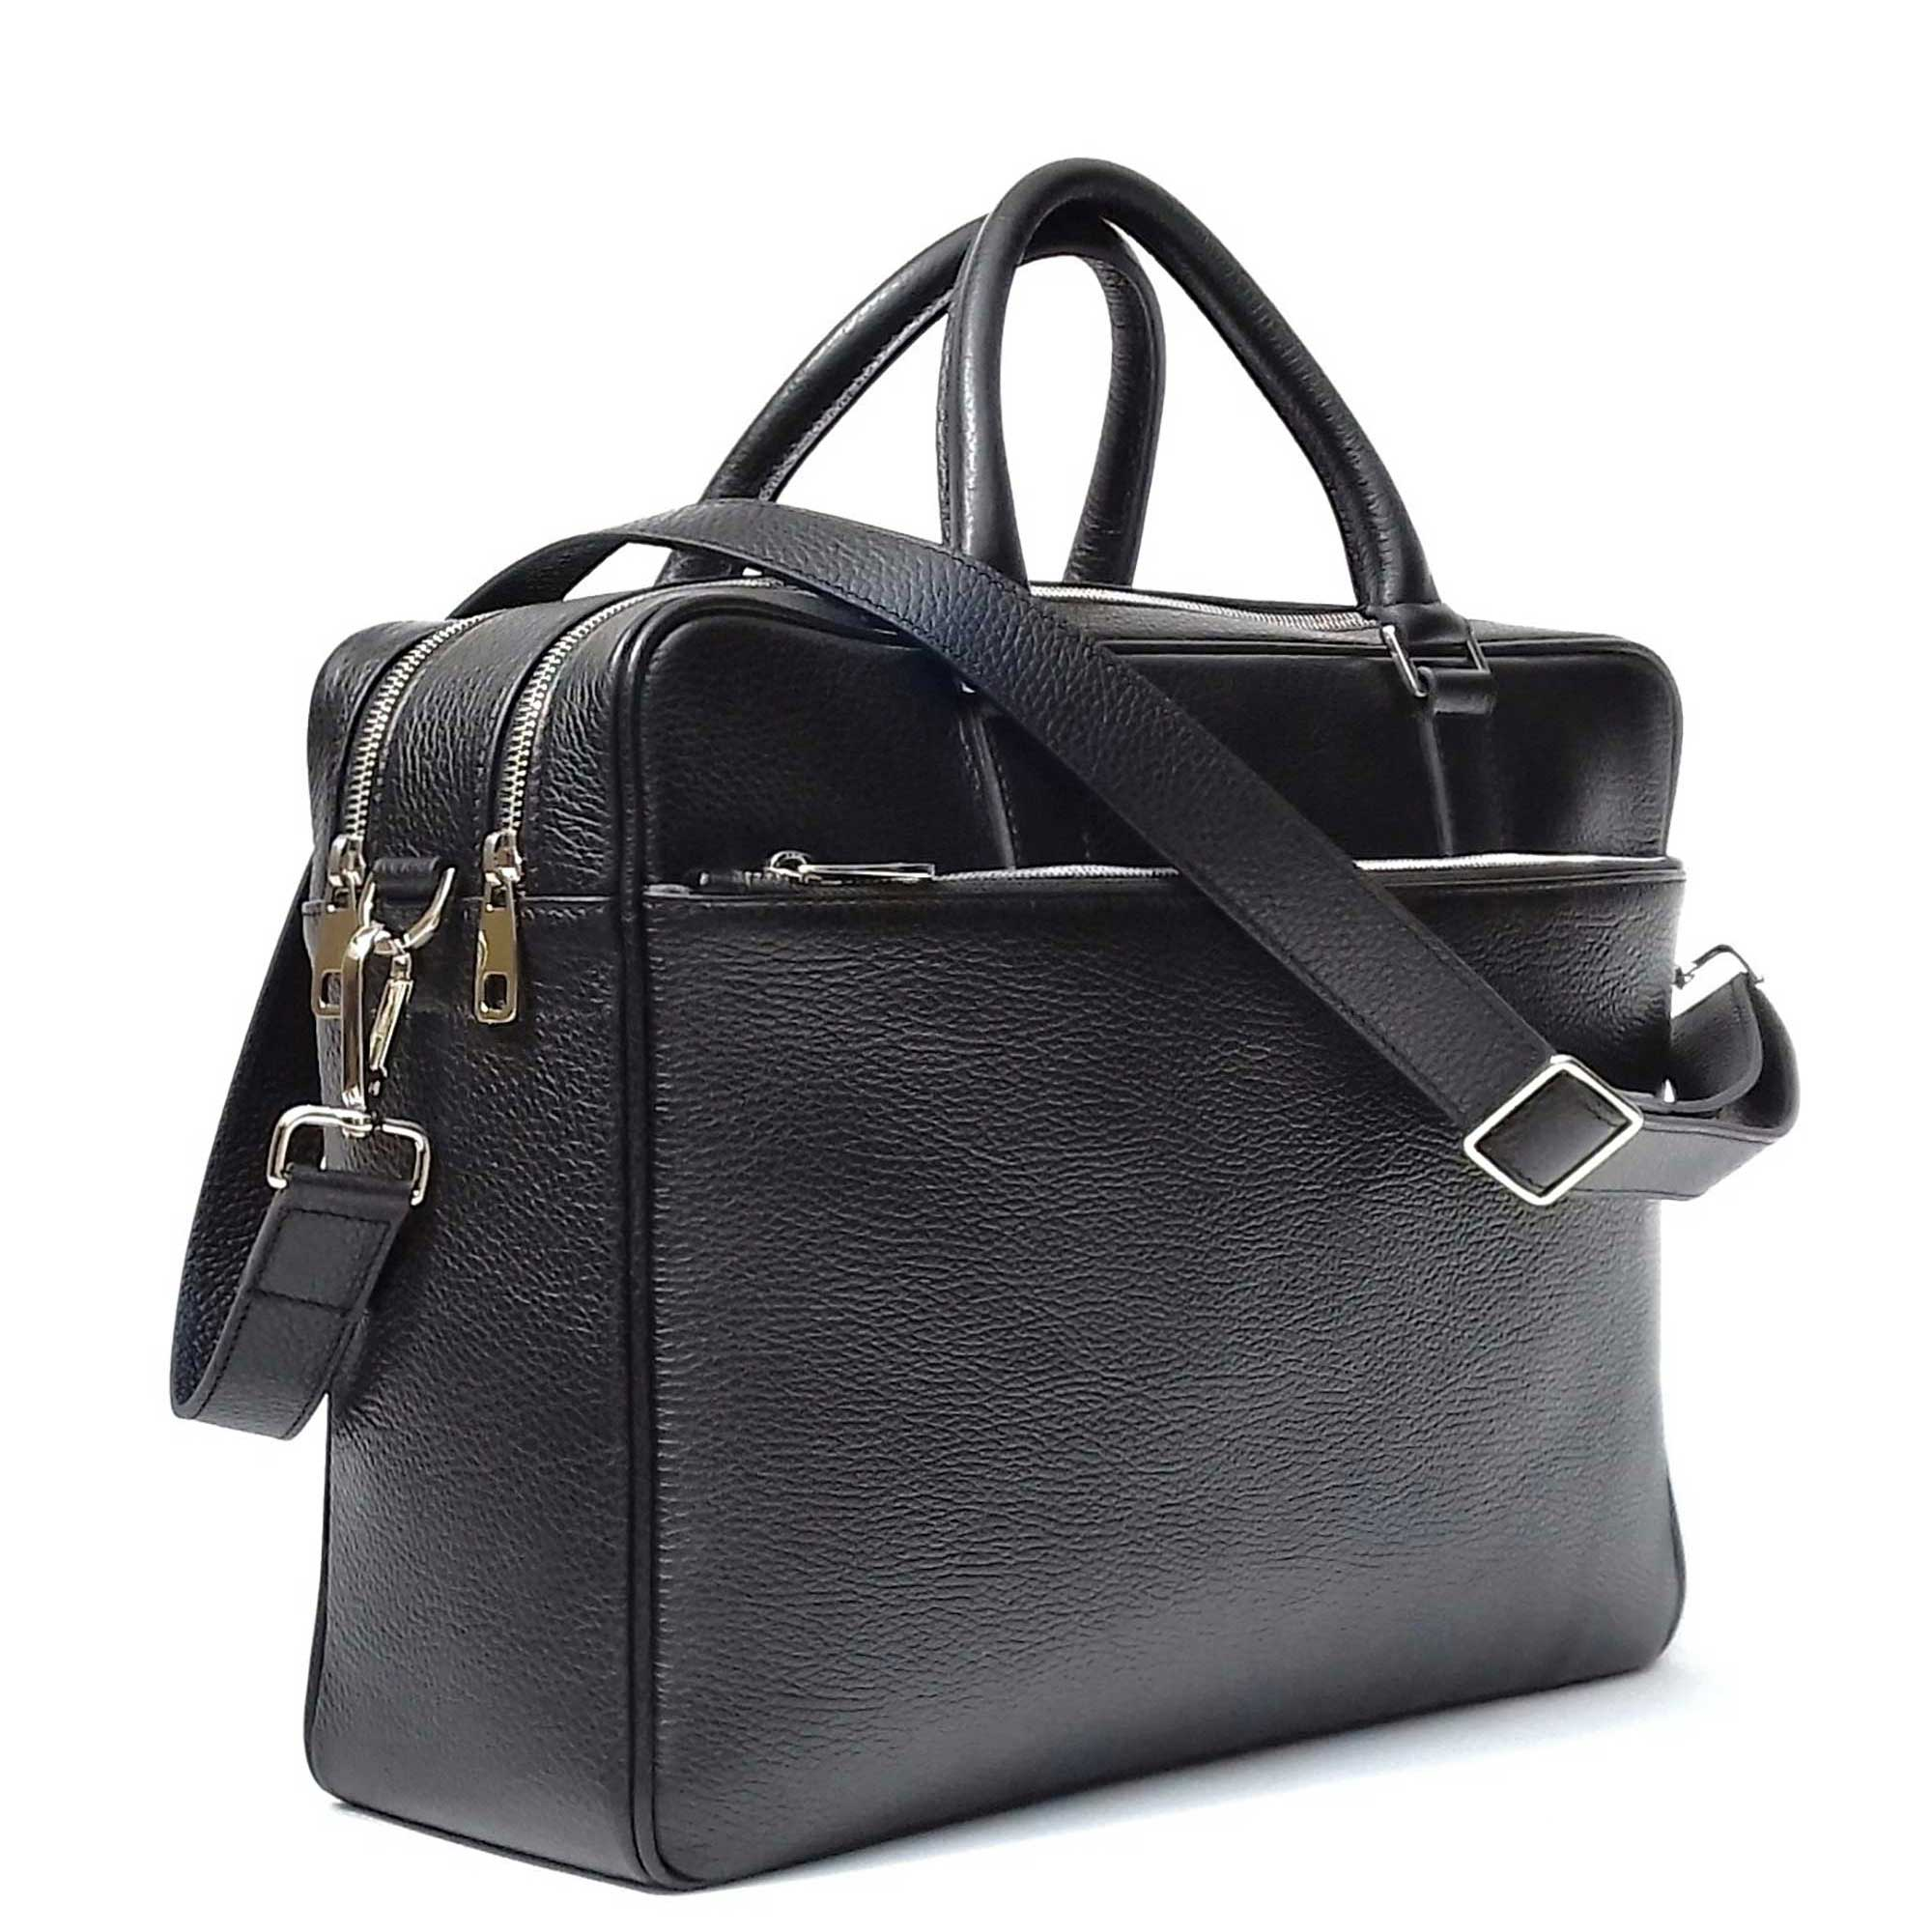 Superior Quality Italian Leather Briefcases for Men and Women - DiLoro Leather | Designed in Switzerland